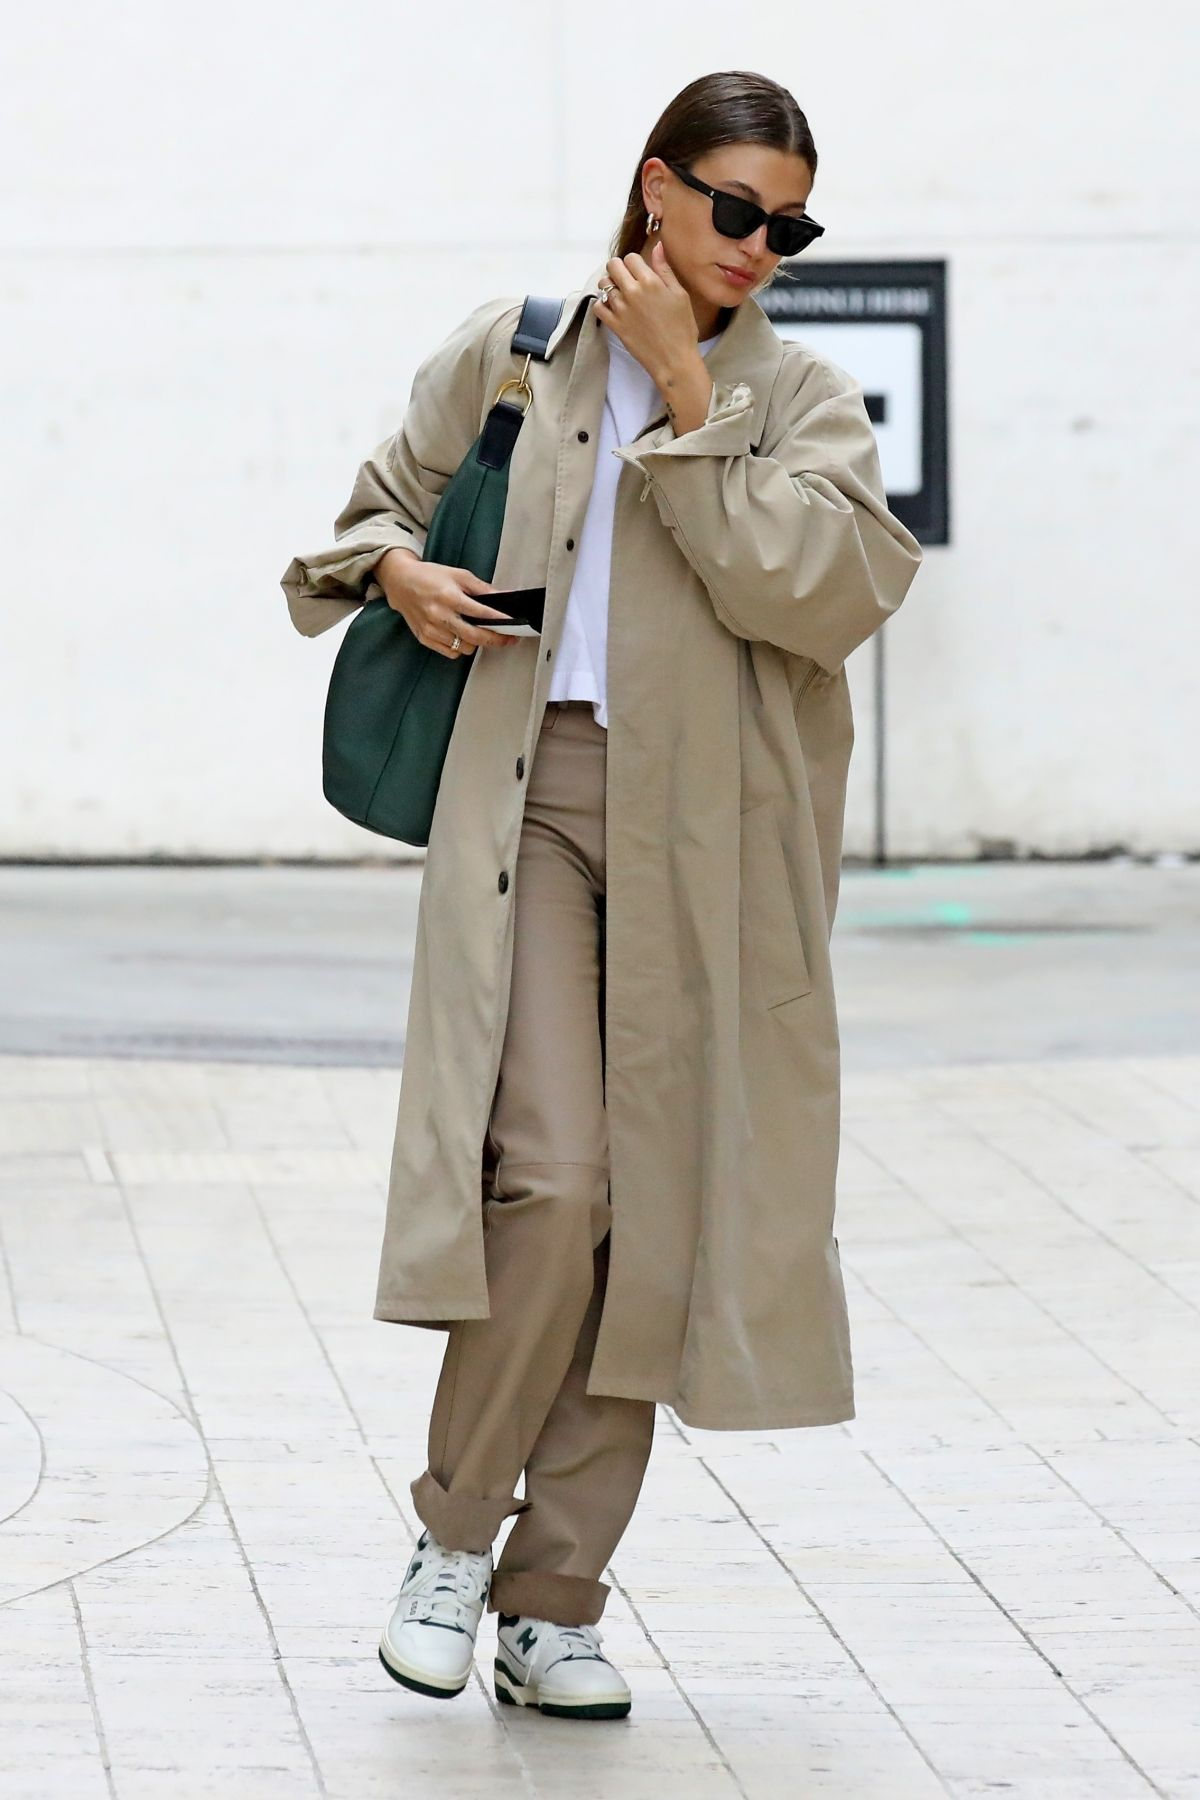 hailey-bieber-wore-balenciaga-wool-trench-coat-out-in-los-angeles-may-6-2021